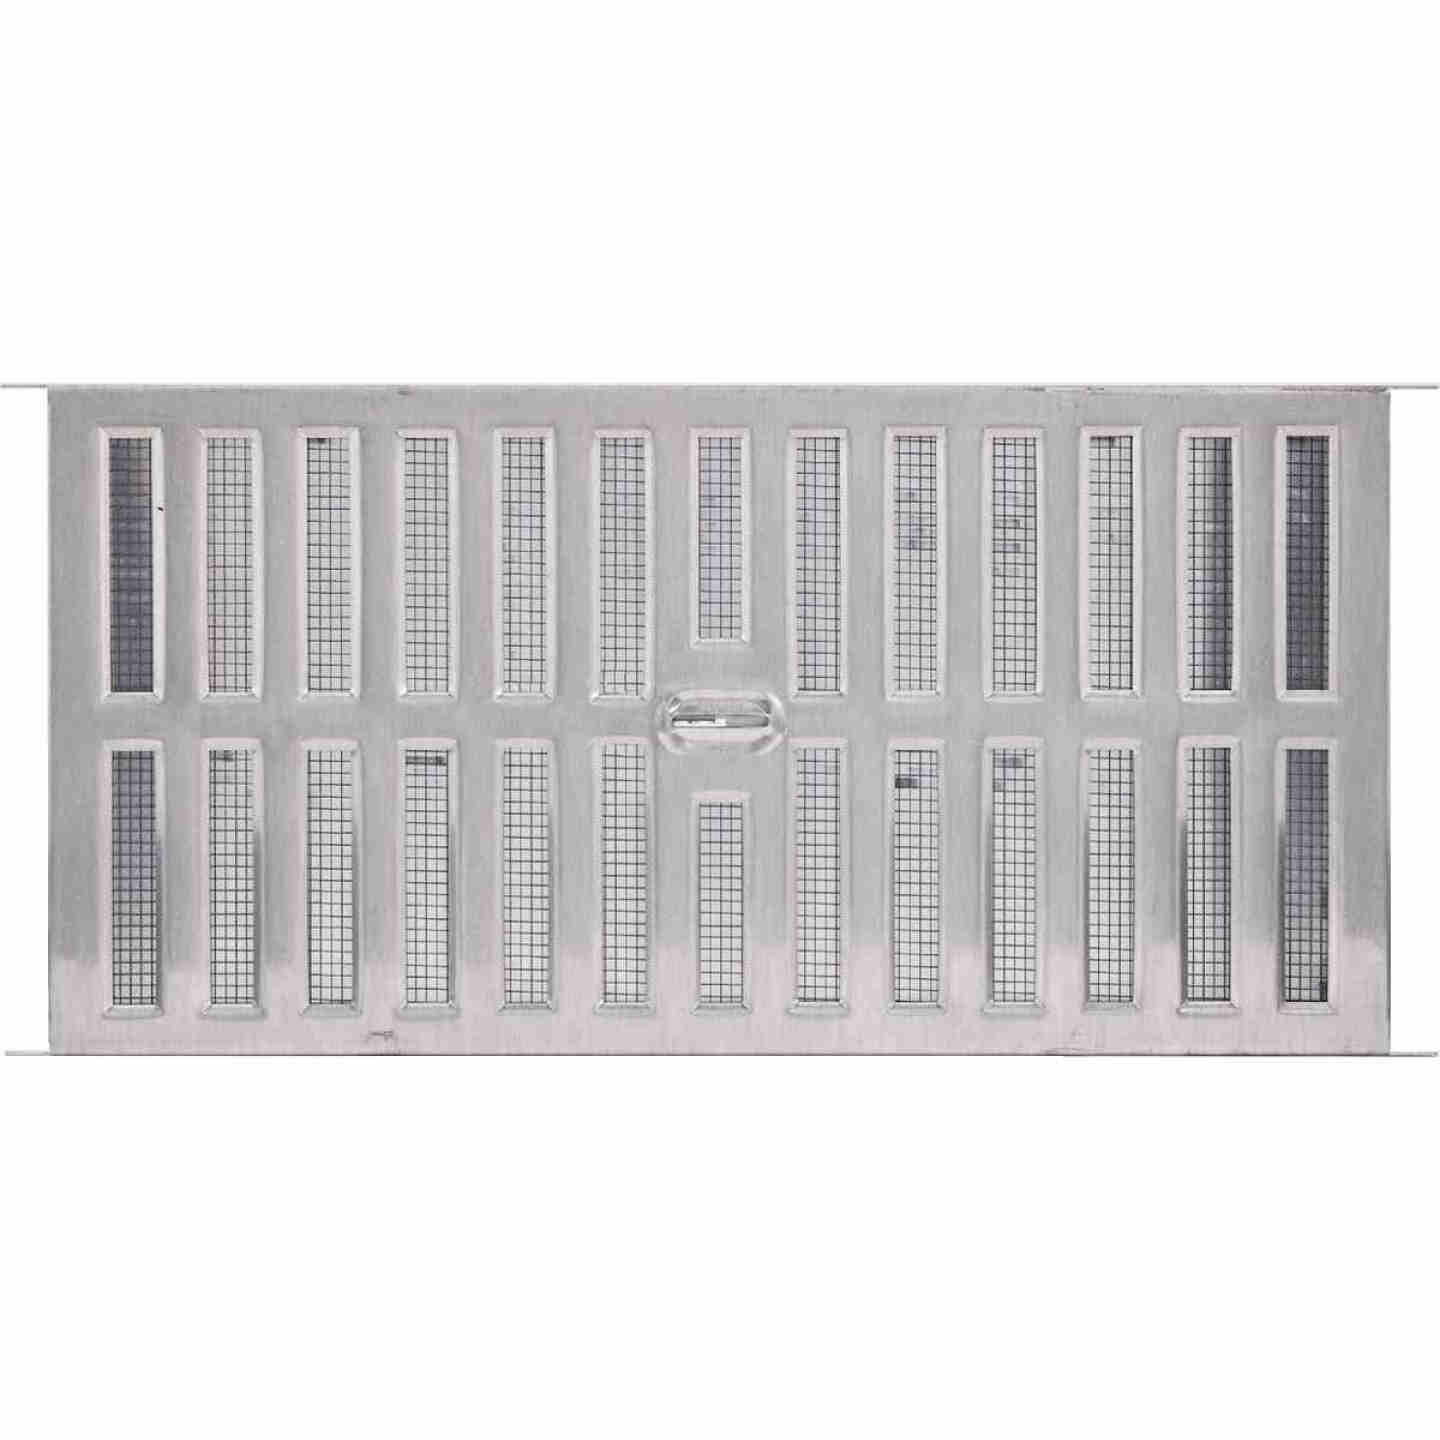 Air Vent 8 In. x 16 In. Aluminum Manual Foundation Vent with Adjustable Sliding Damper Image 2